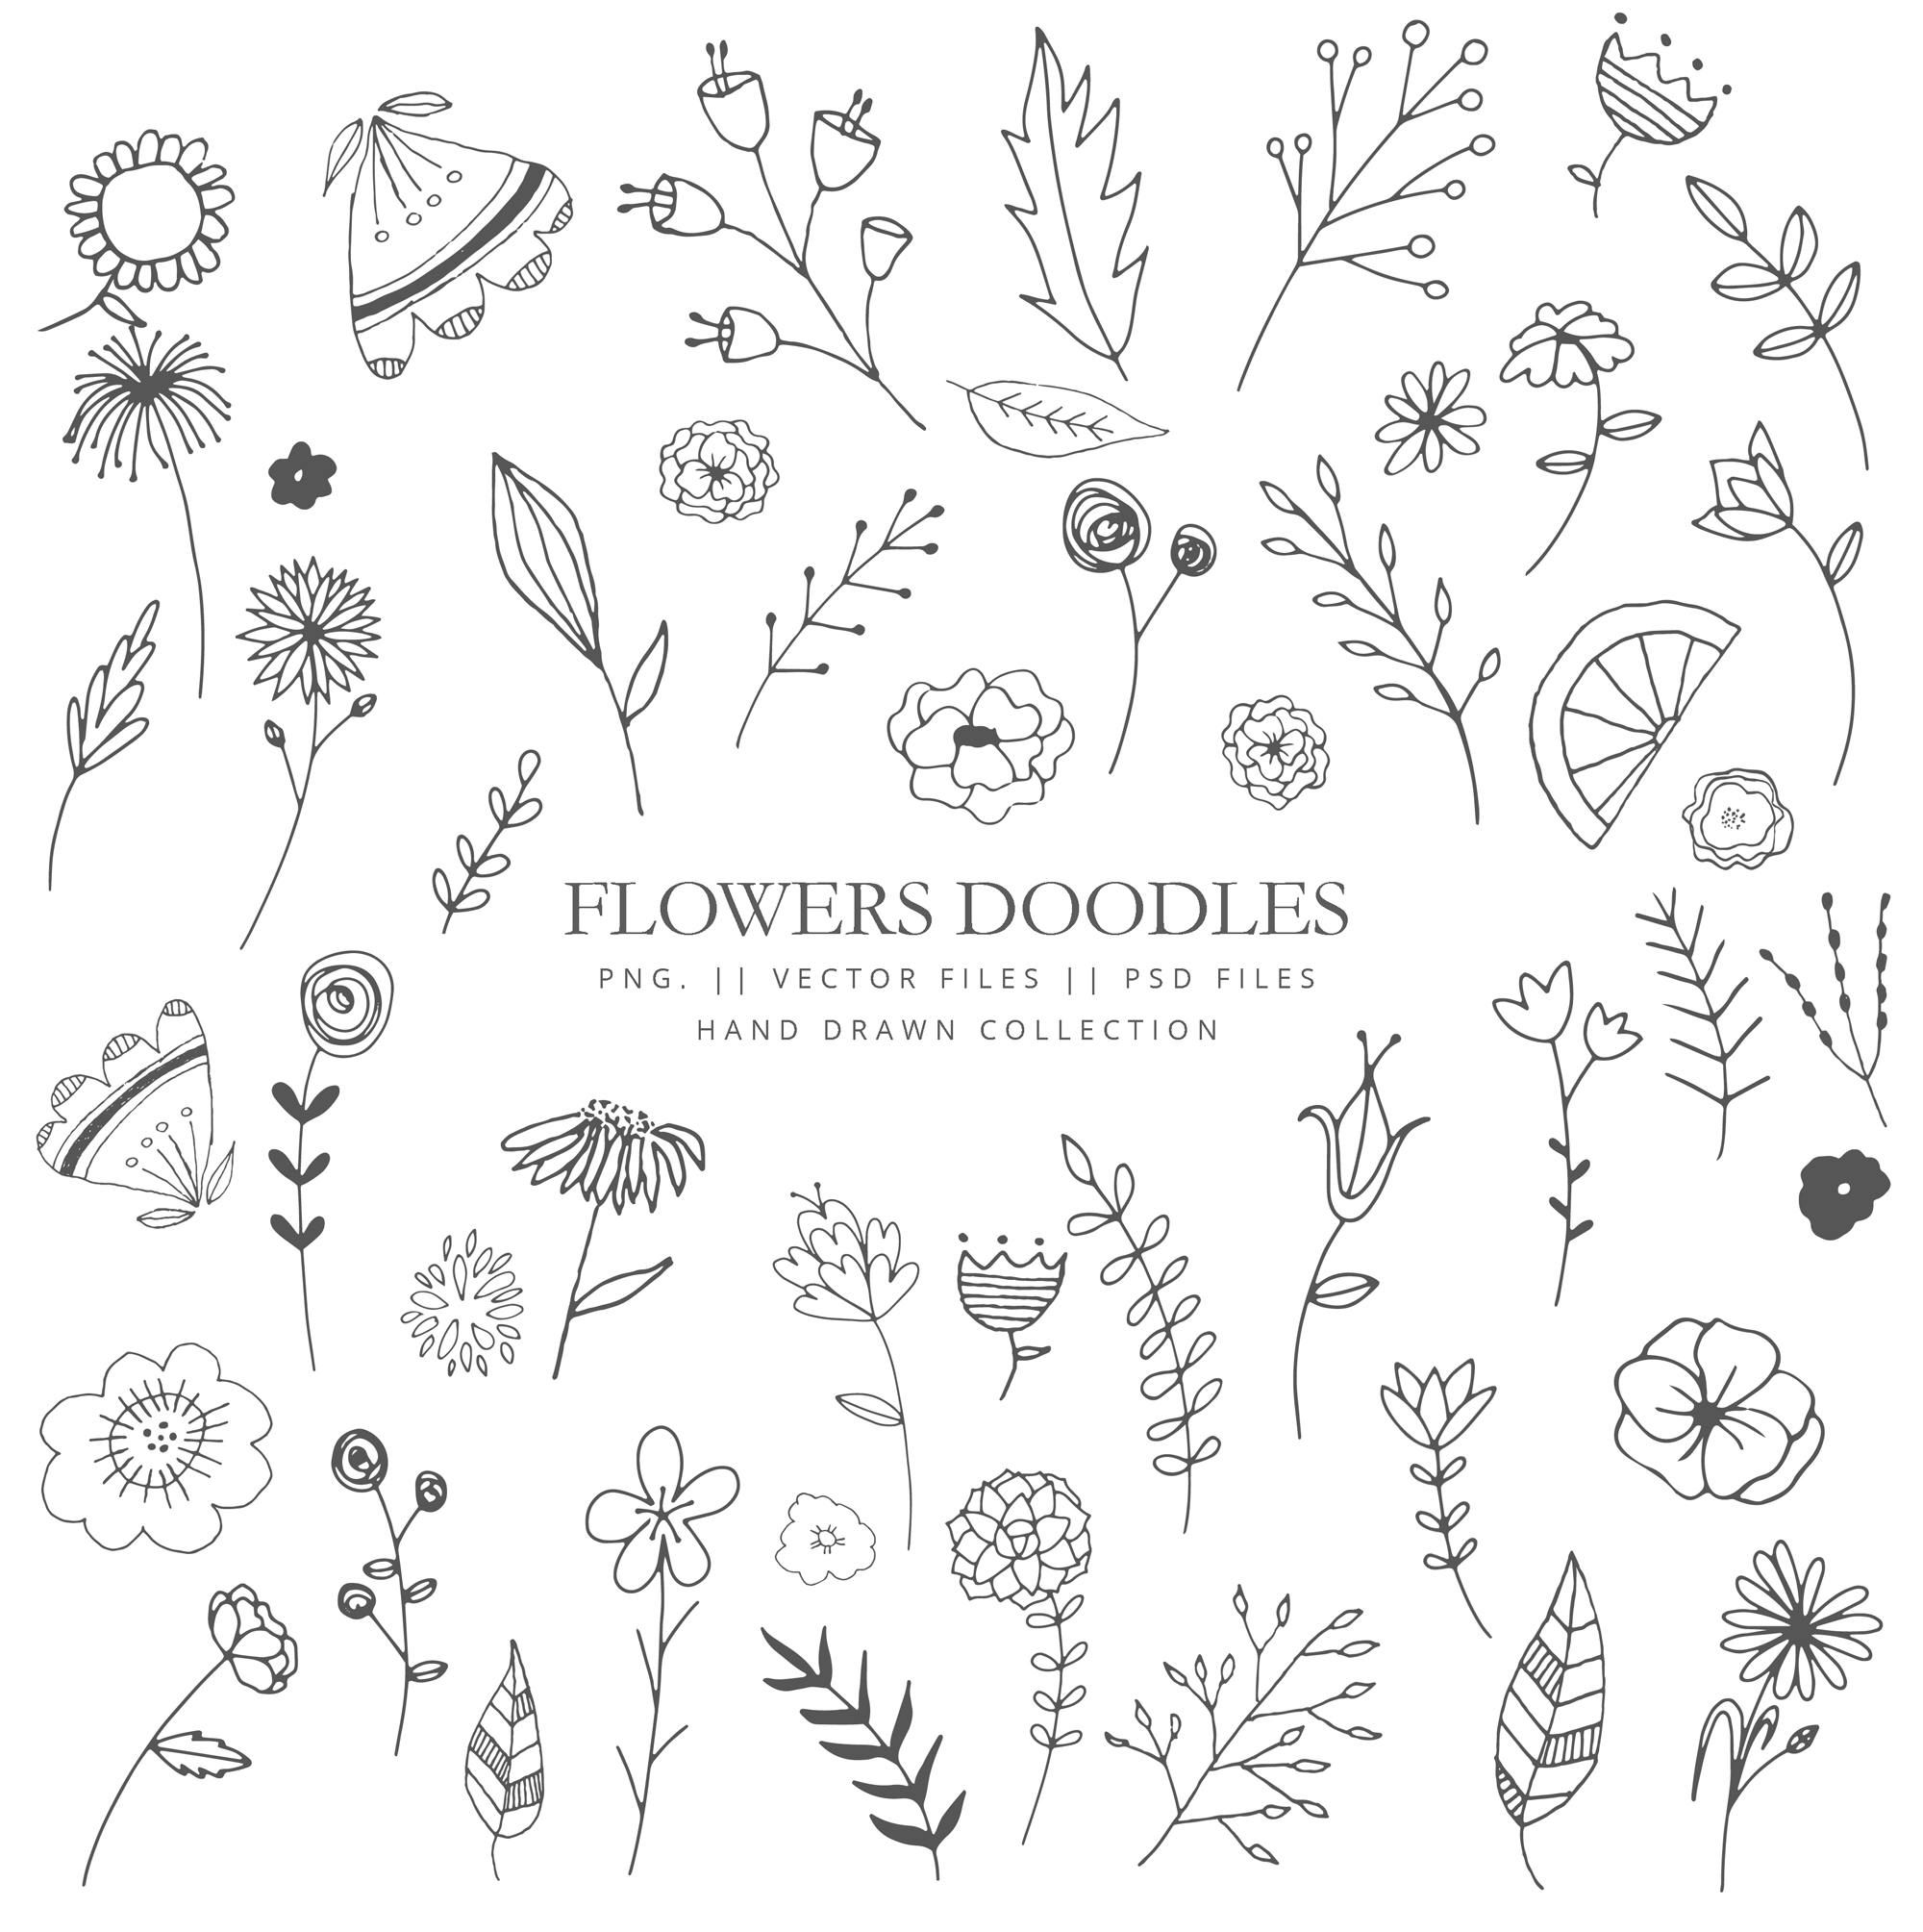 Petalos clipart graphic free library Clip art with doodle flowers, leaves and branches, hand ... graphic free library